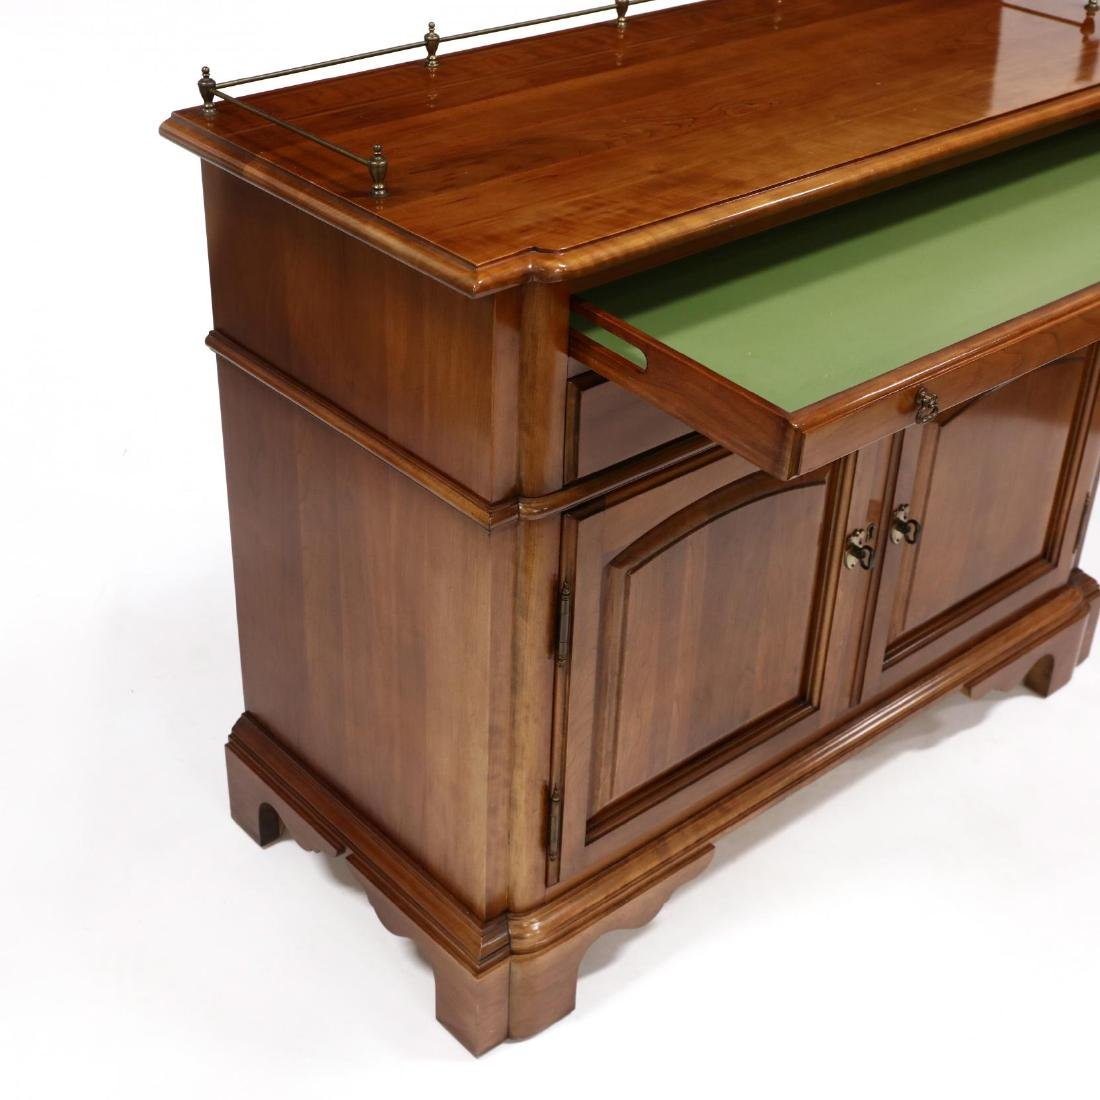 Monitor, Chippendale Style Cherry Server - 4